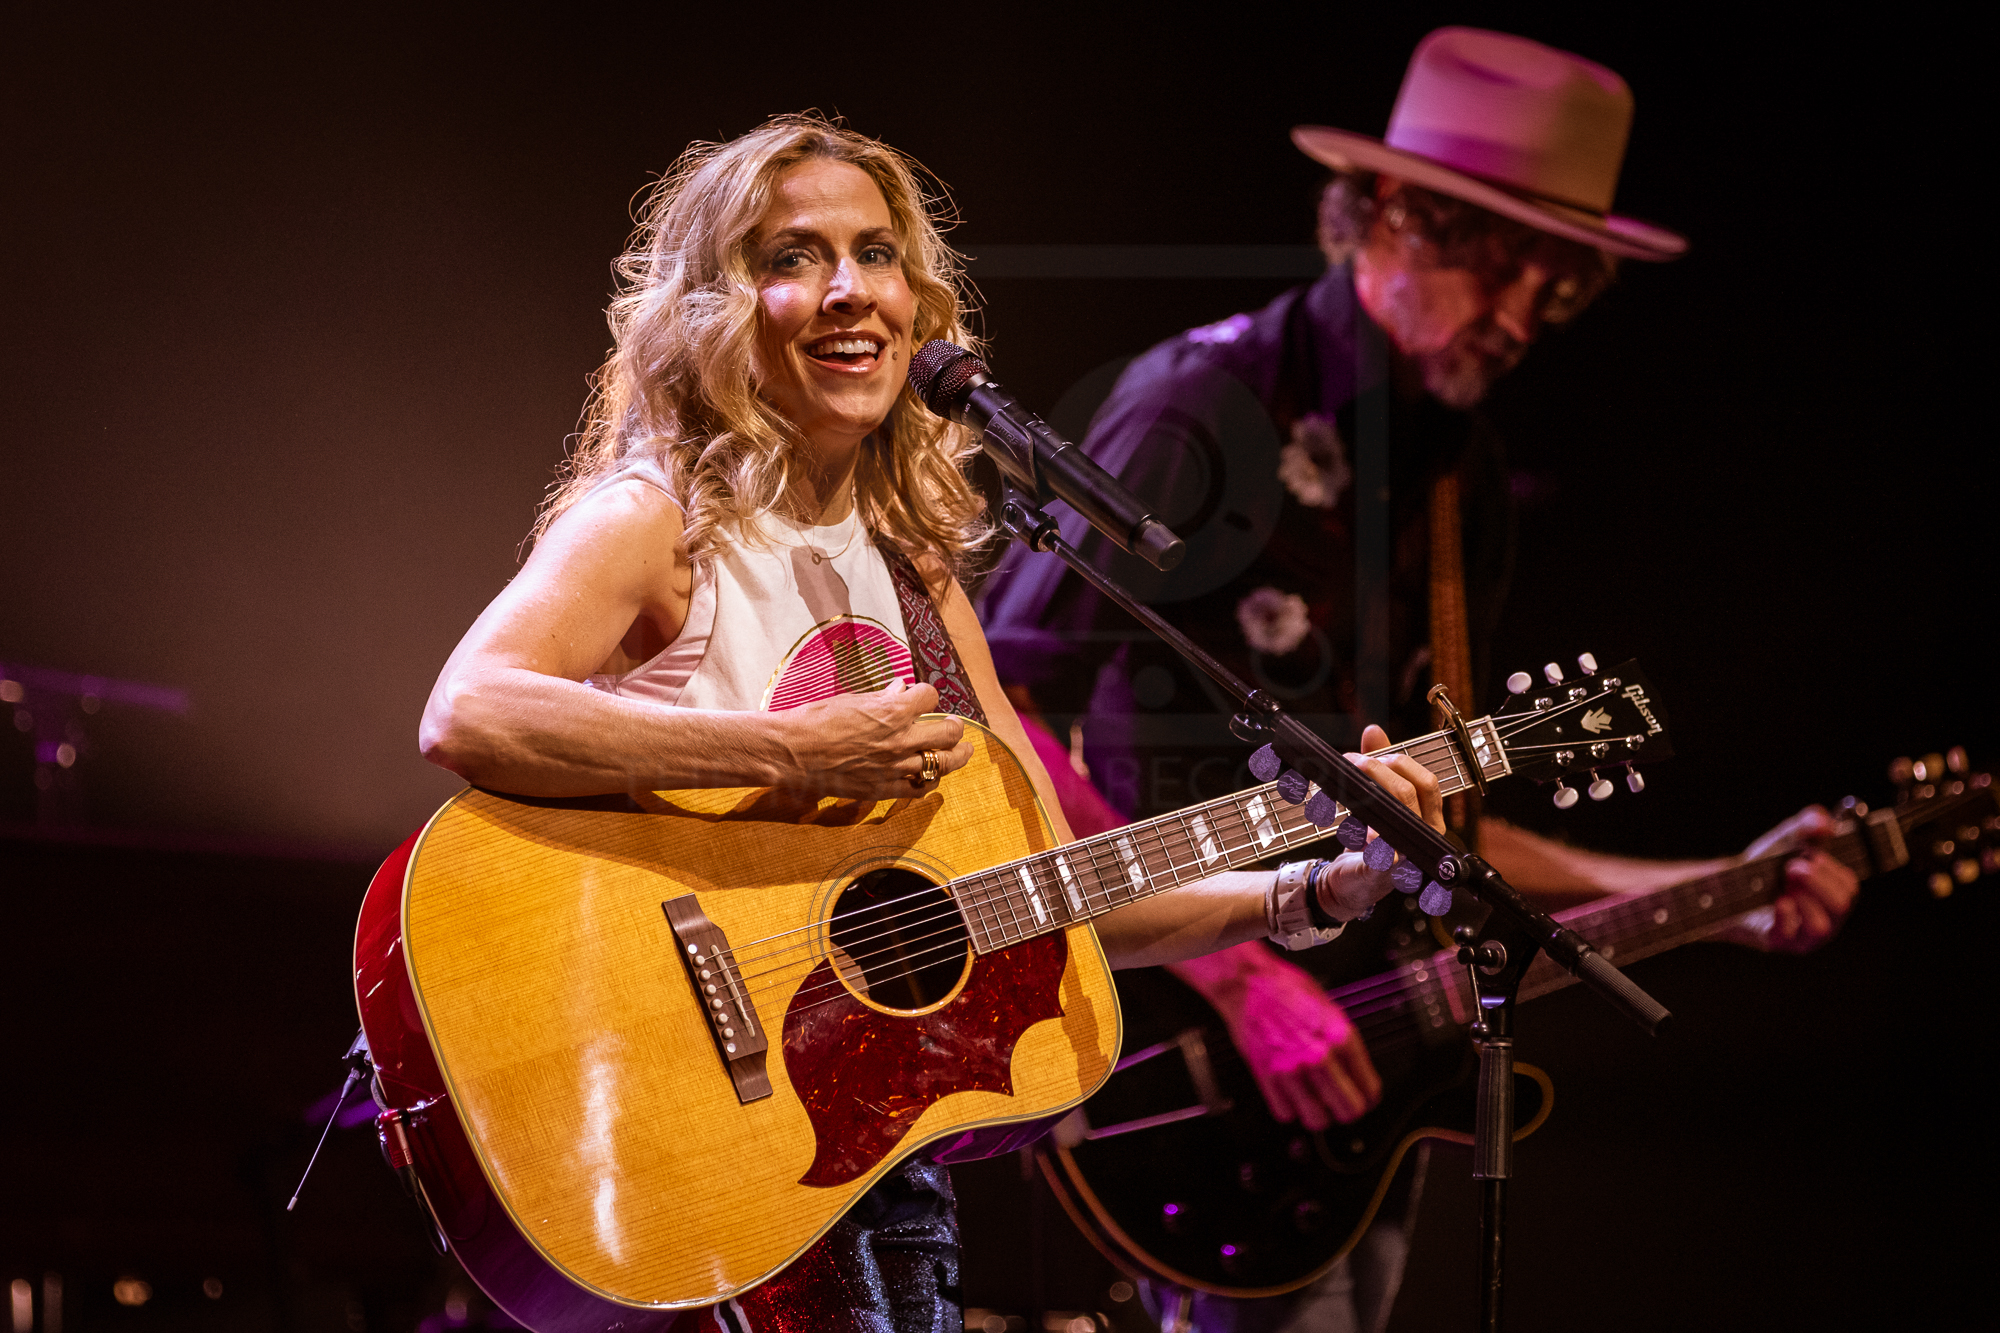 SHERYL CROW PERFORMING AT GLASGOW'S ROYAL CONCERT HALL - 26.06.2019  PICTURE BY: KENDALL WILSON PHOTOGRAPHY